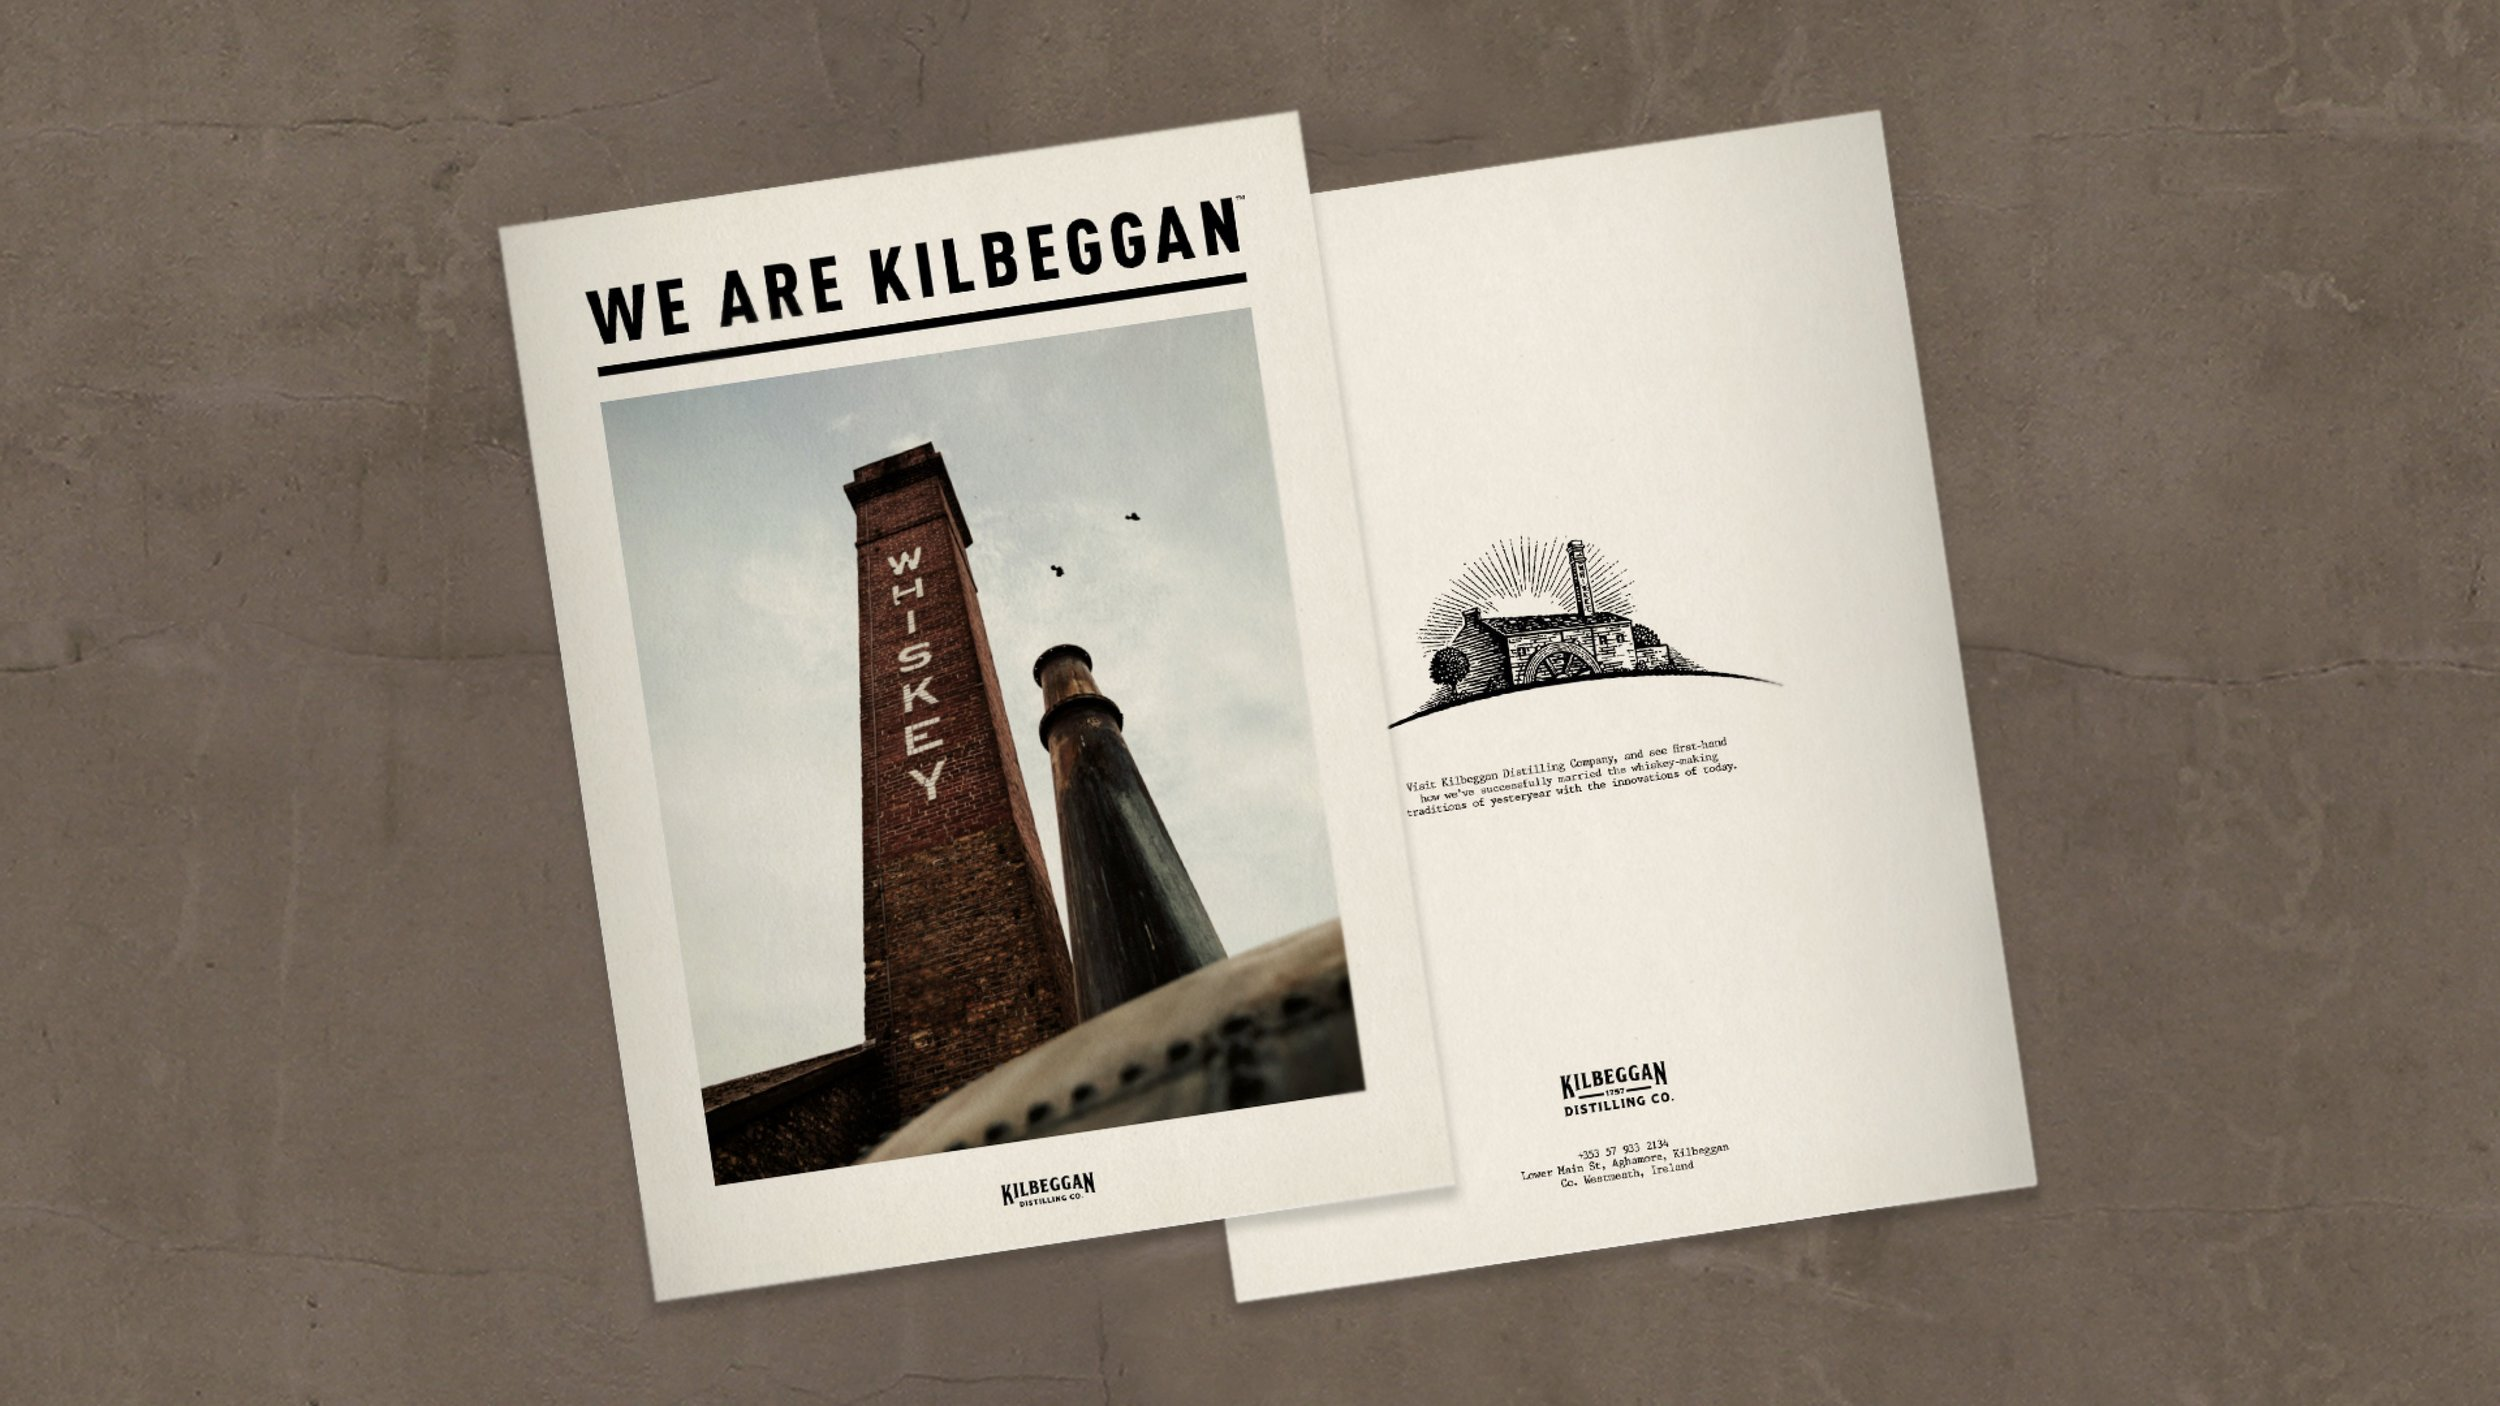 Kilbeggan_Zine_Comps_072517 (dragged).jpeg